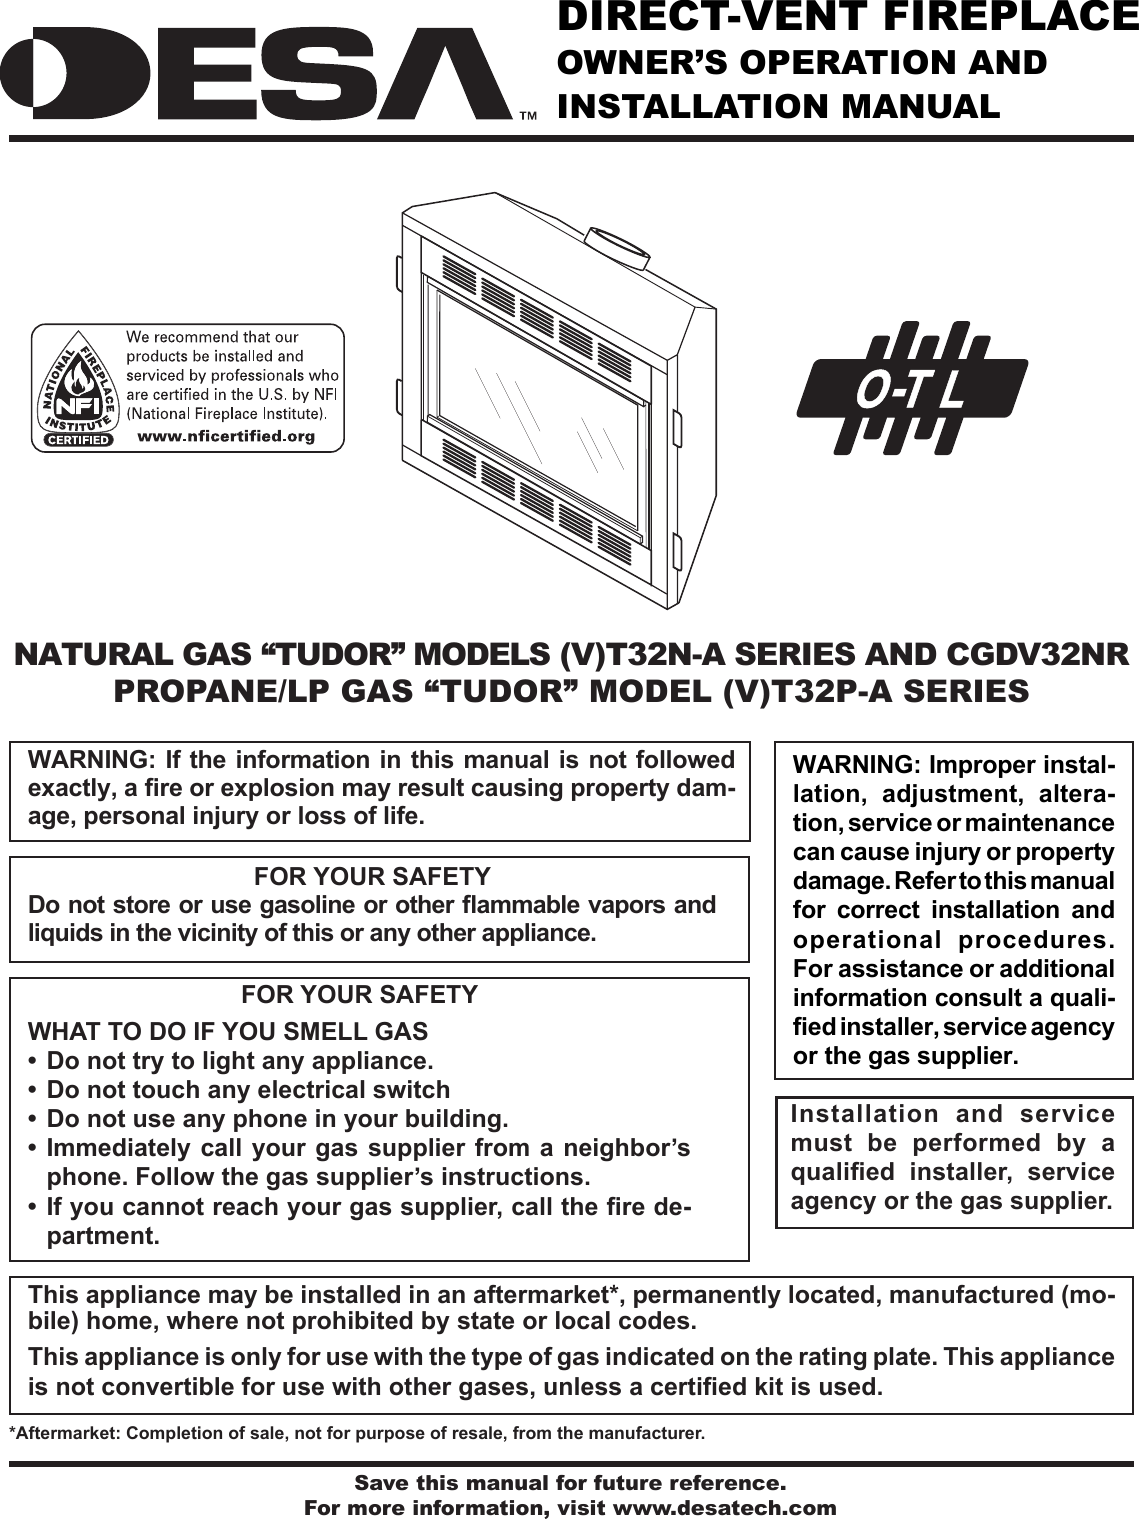 Desa Vt32n A Series Users Manual 116646 01a Propane Electric Refrigerator Wiring Schematic